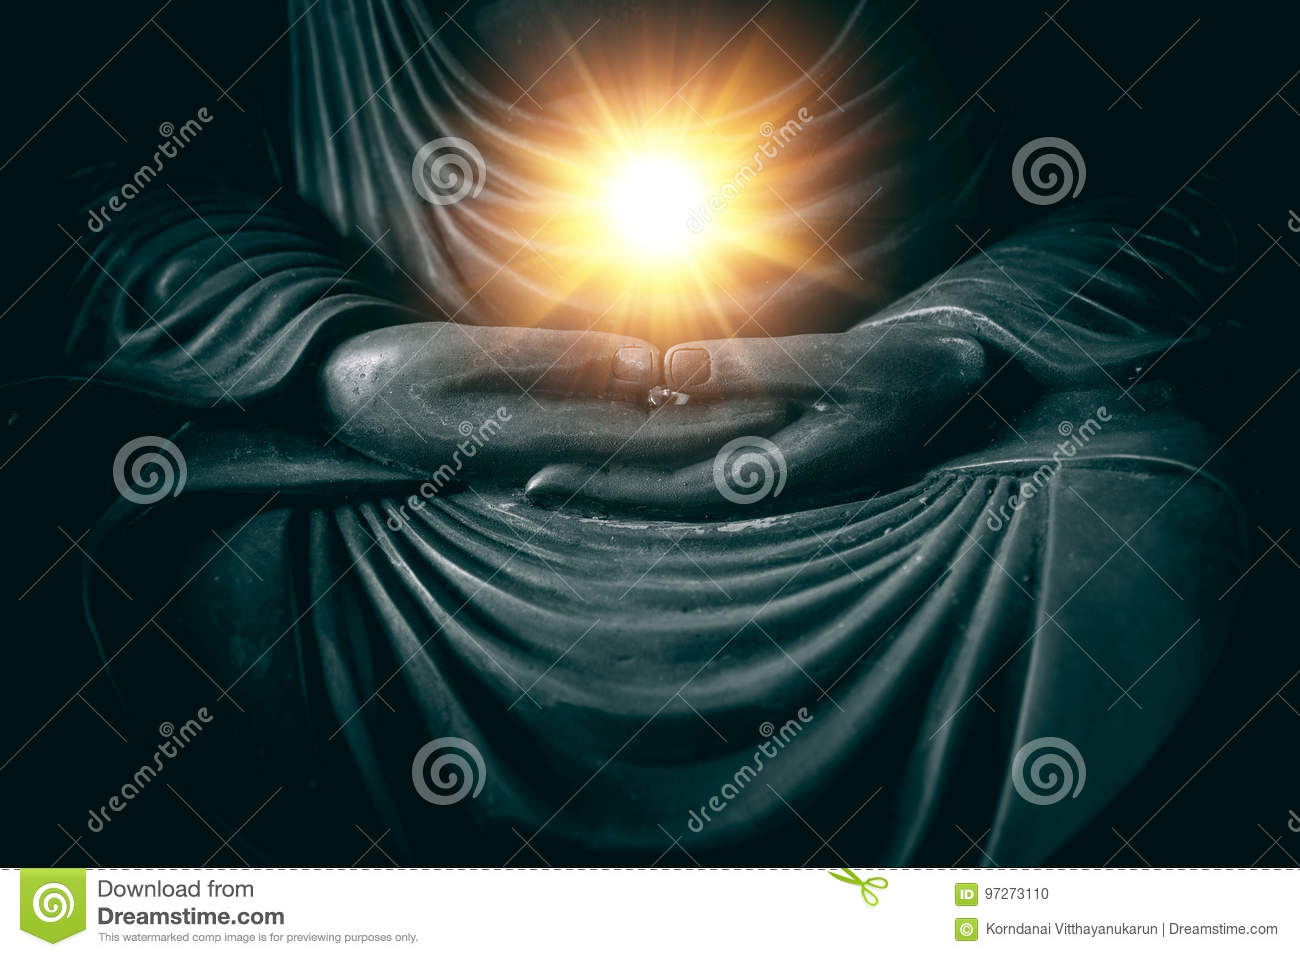 Hand of buddha with light of wisdom and power